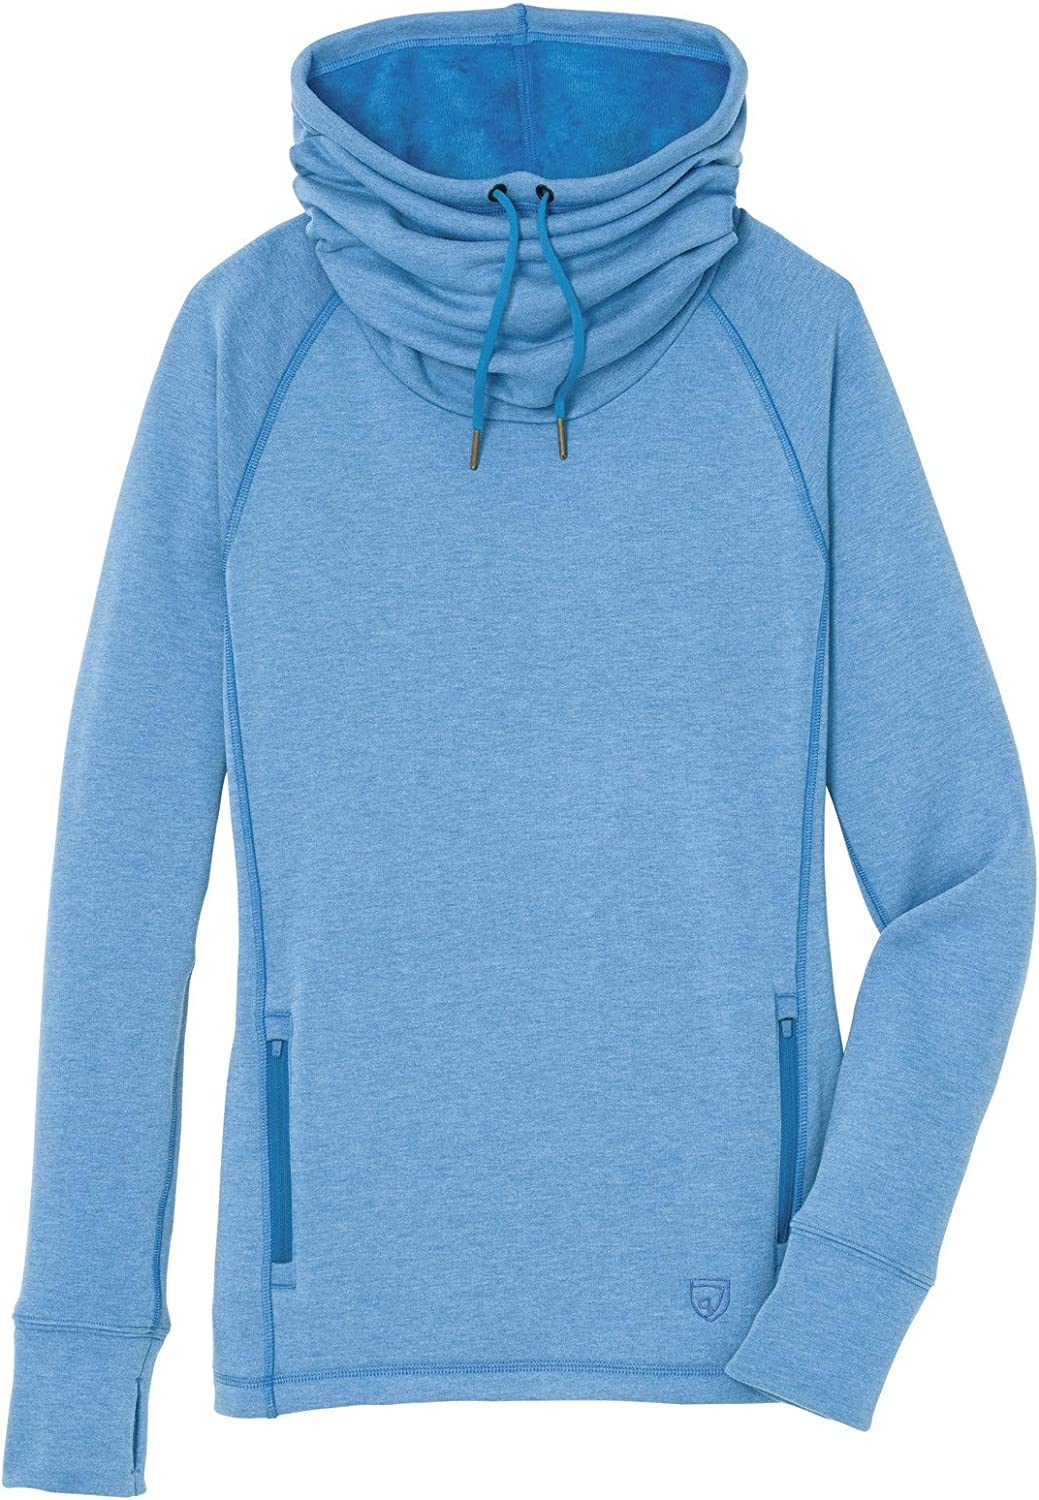 Outlet ☆ Complete Free Shipping Free Shipping Noble Equestrian Premier Pullover Cowl